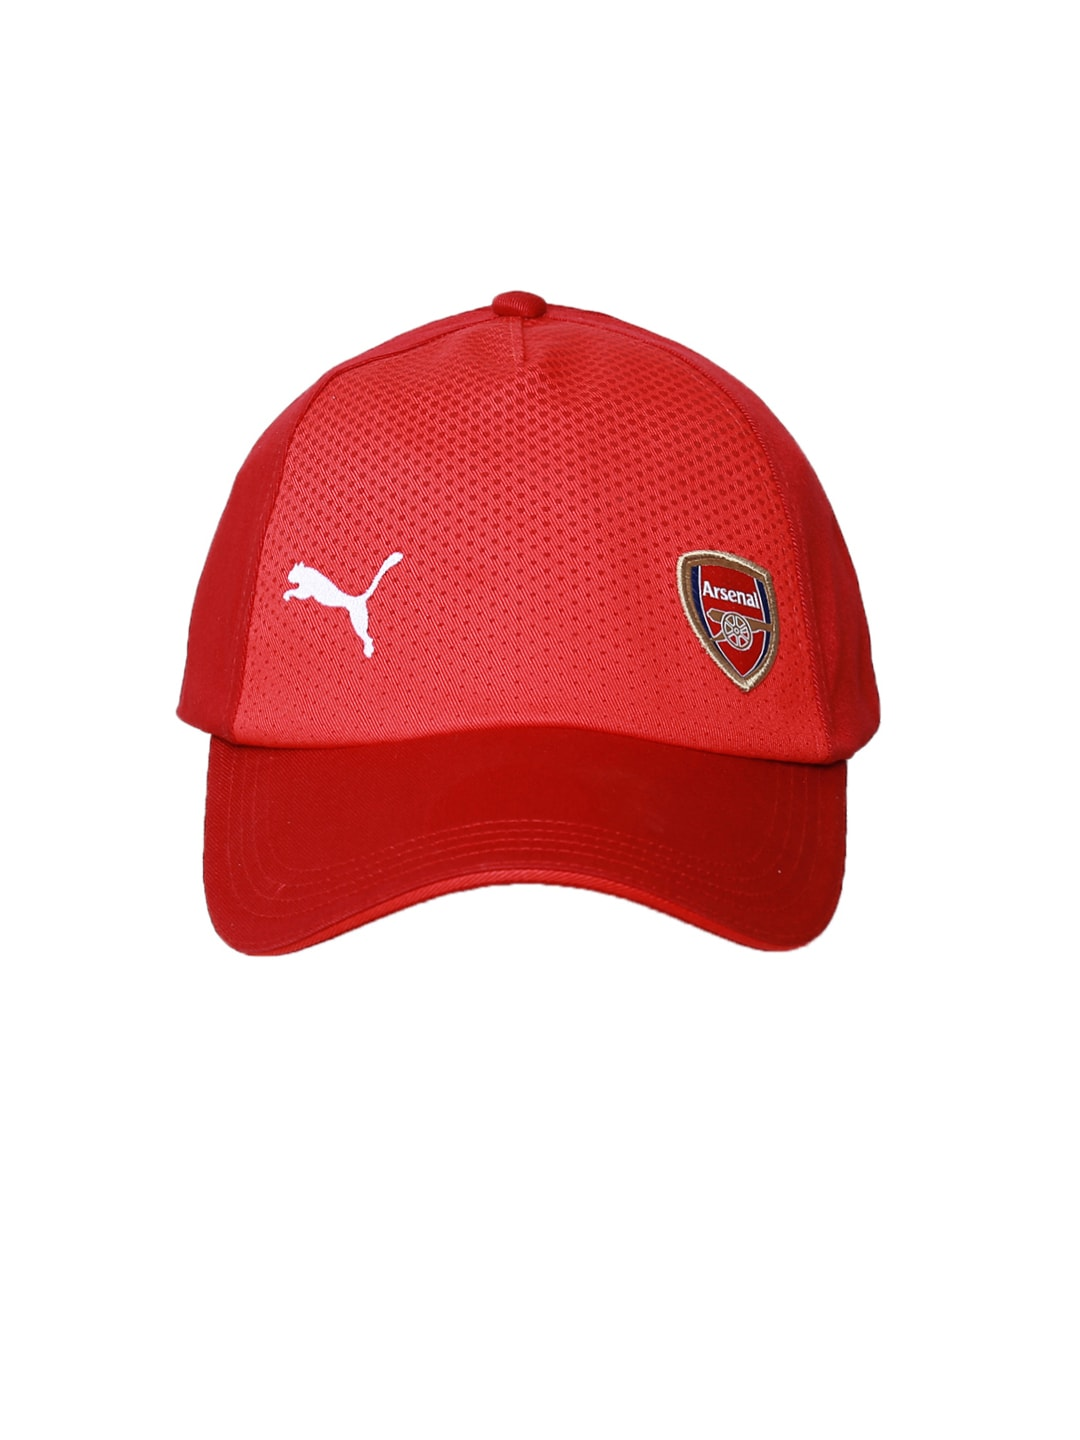 4b795d626bf Puma Polyester Caps - Buy Puma Polyester Caps online in India